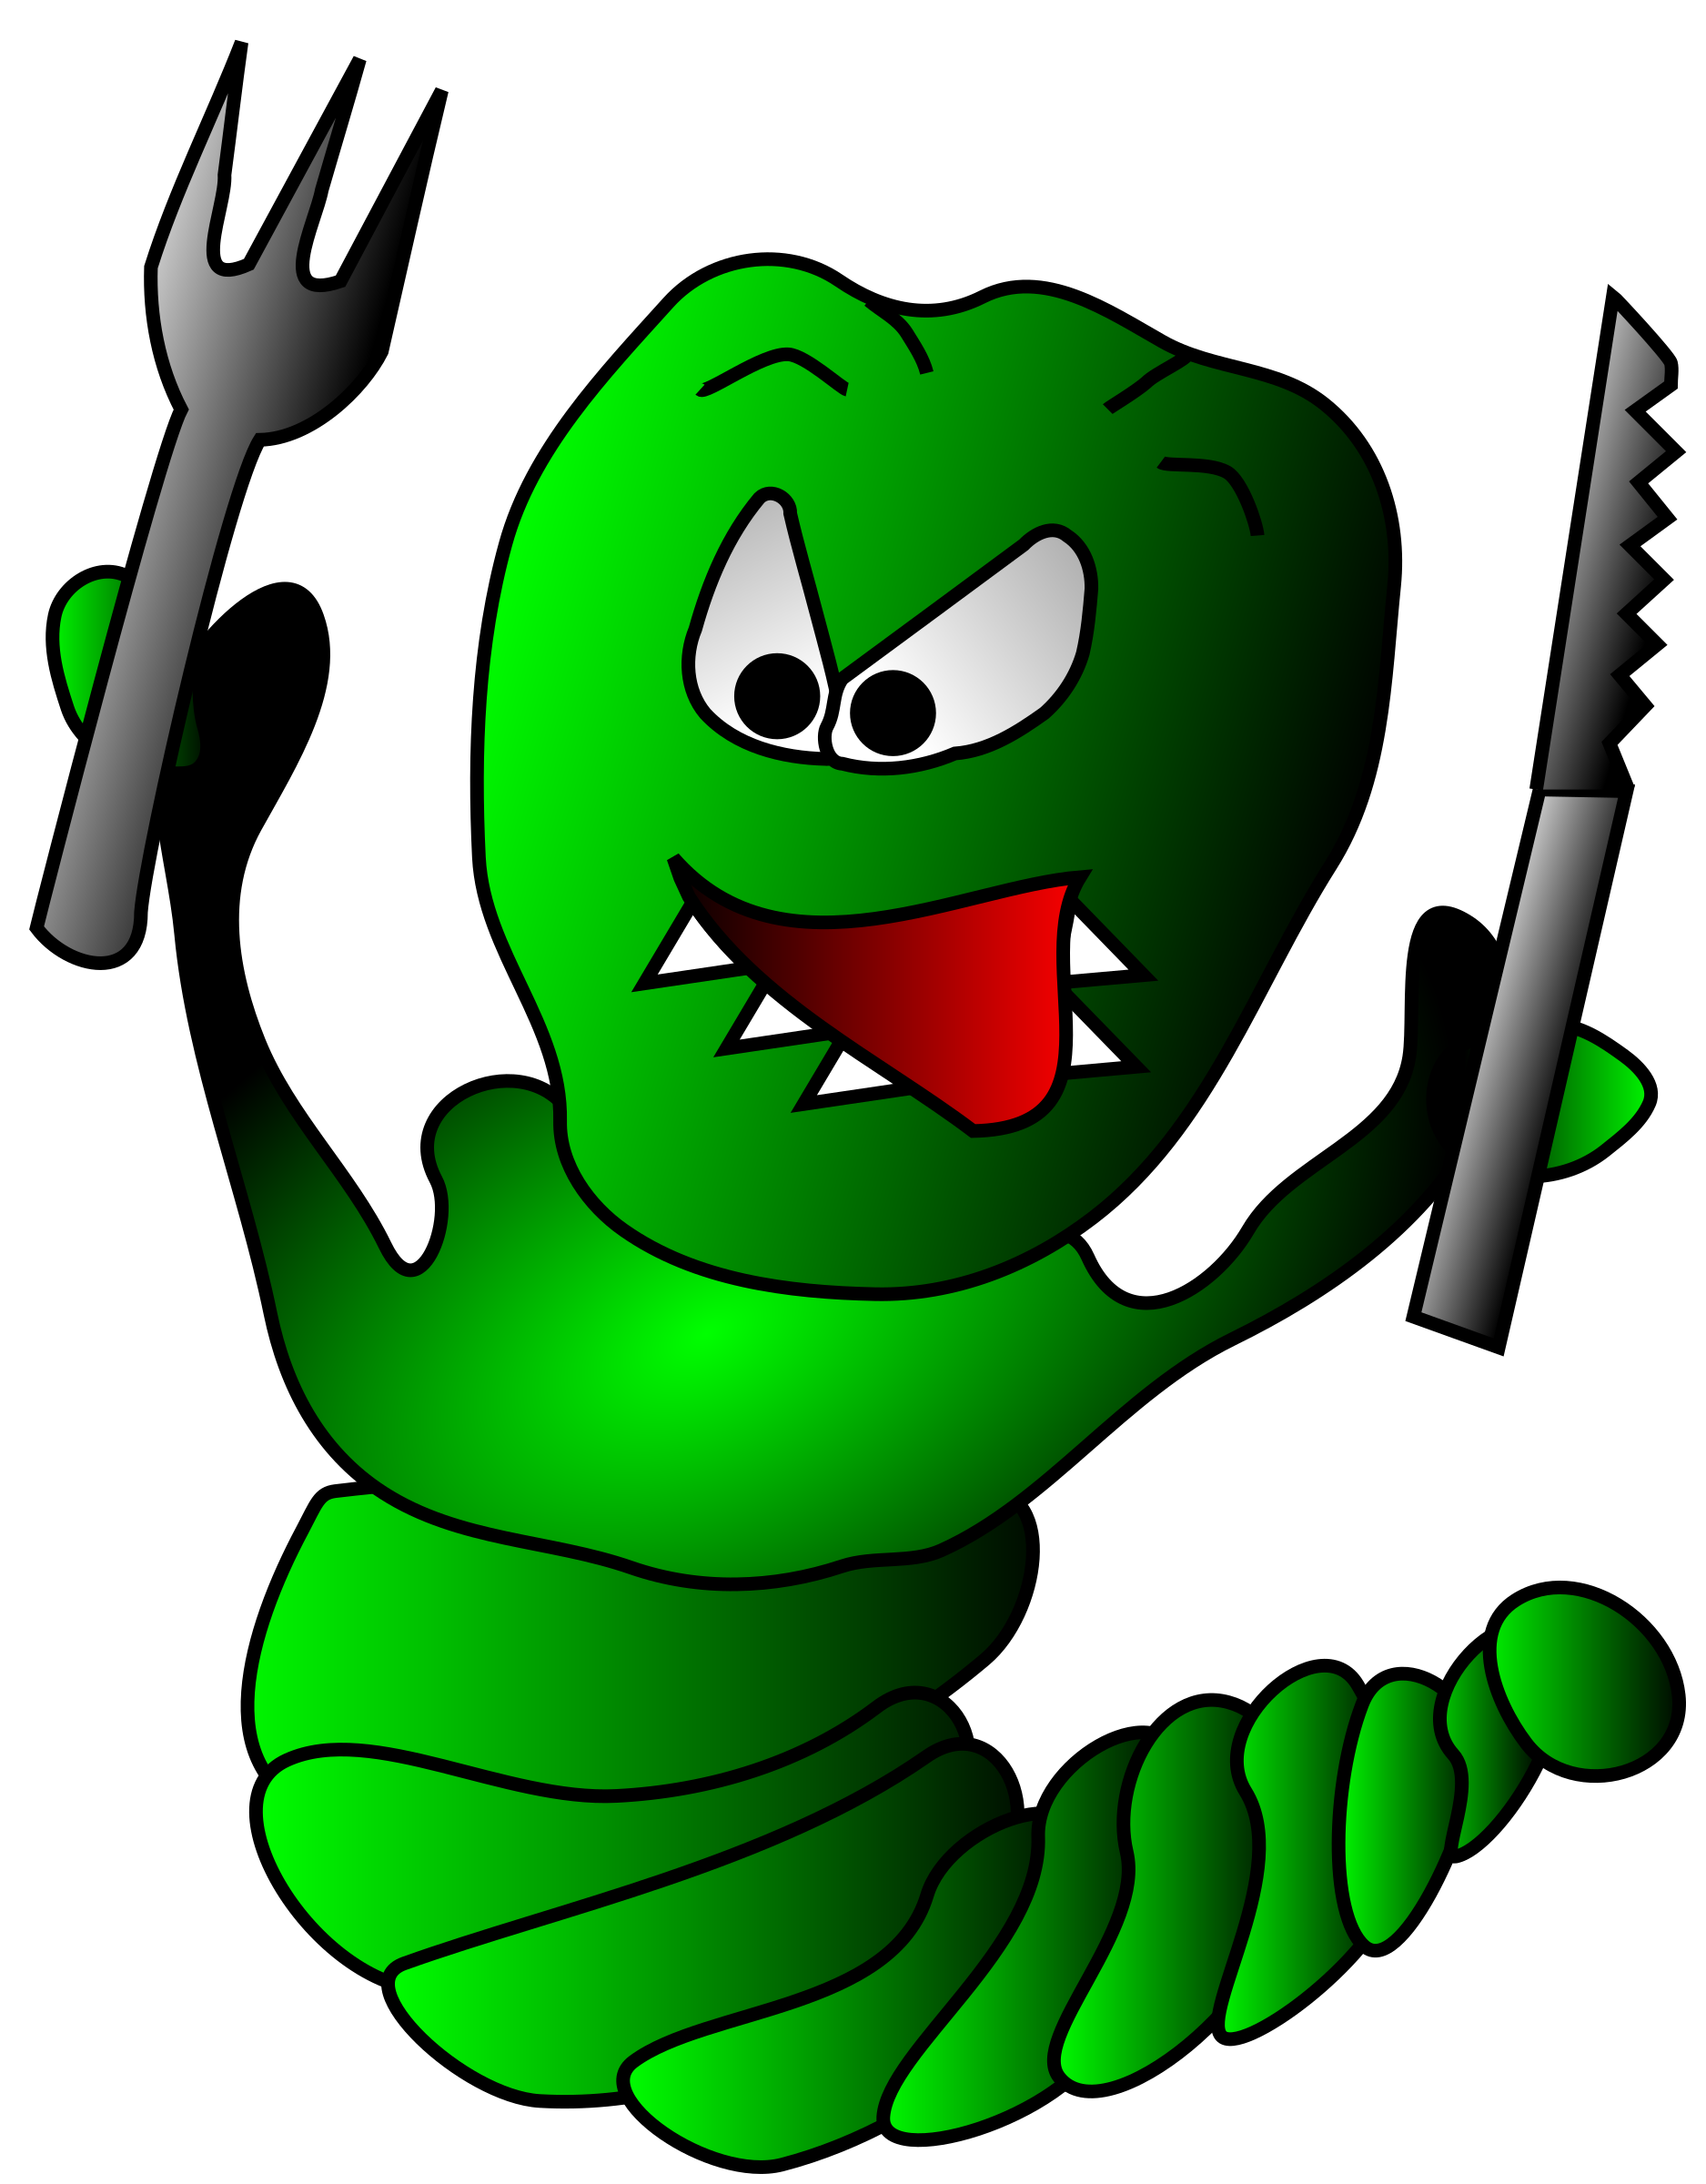 png freeuse stock Caterpillar big image png. Hungry clipart